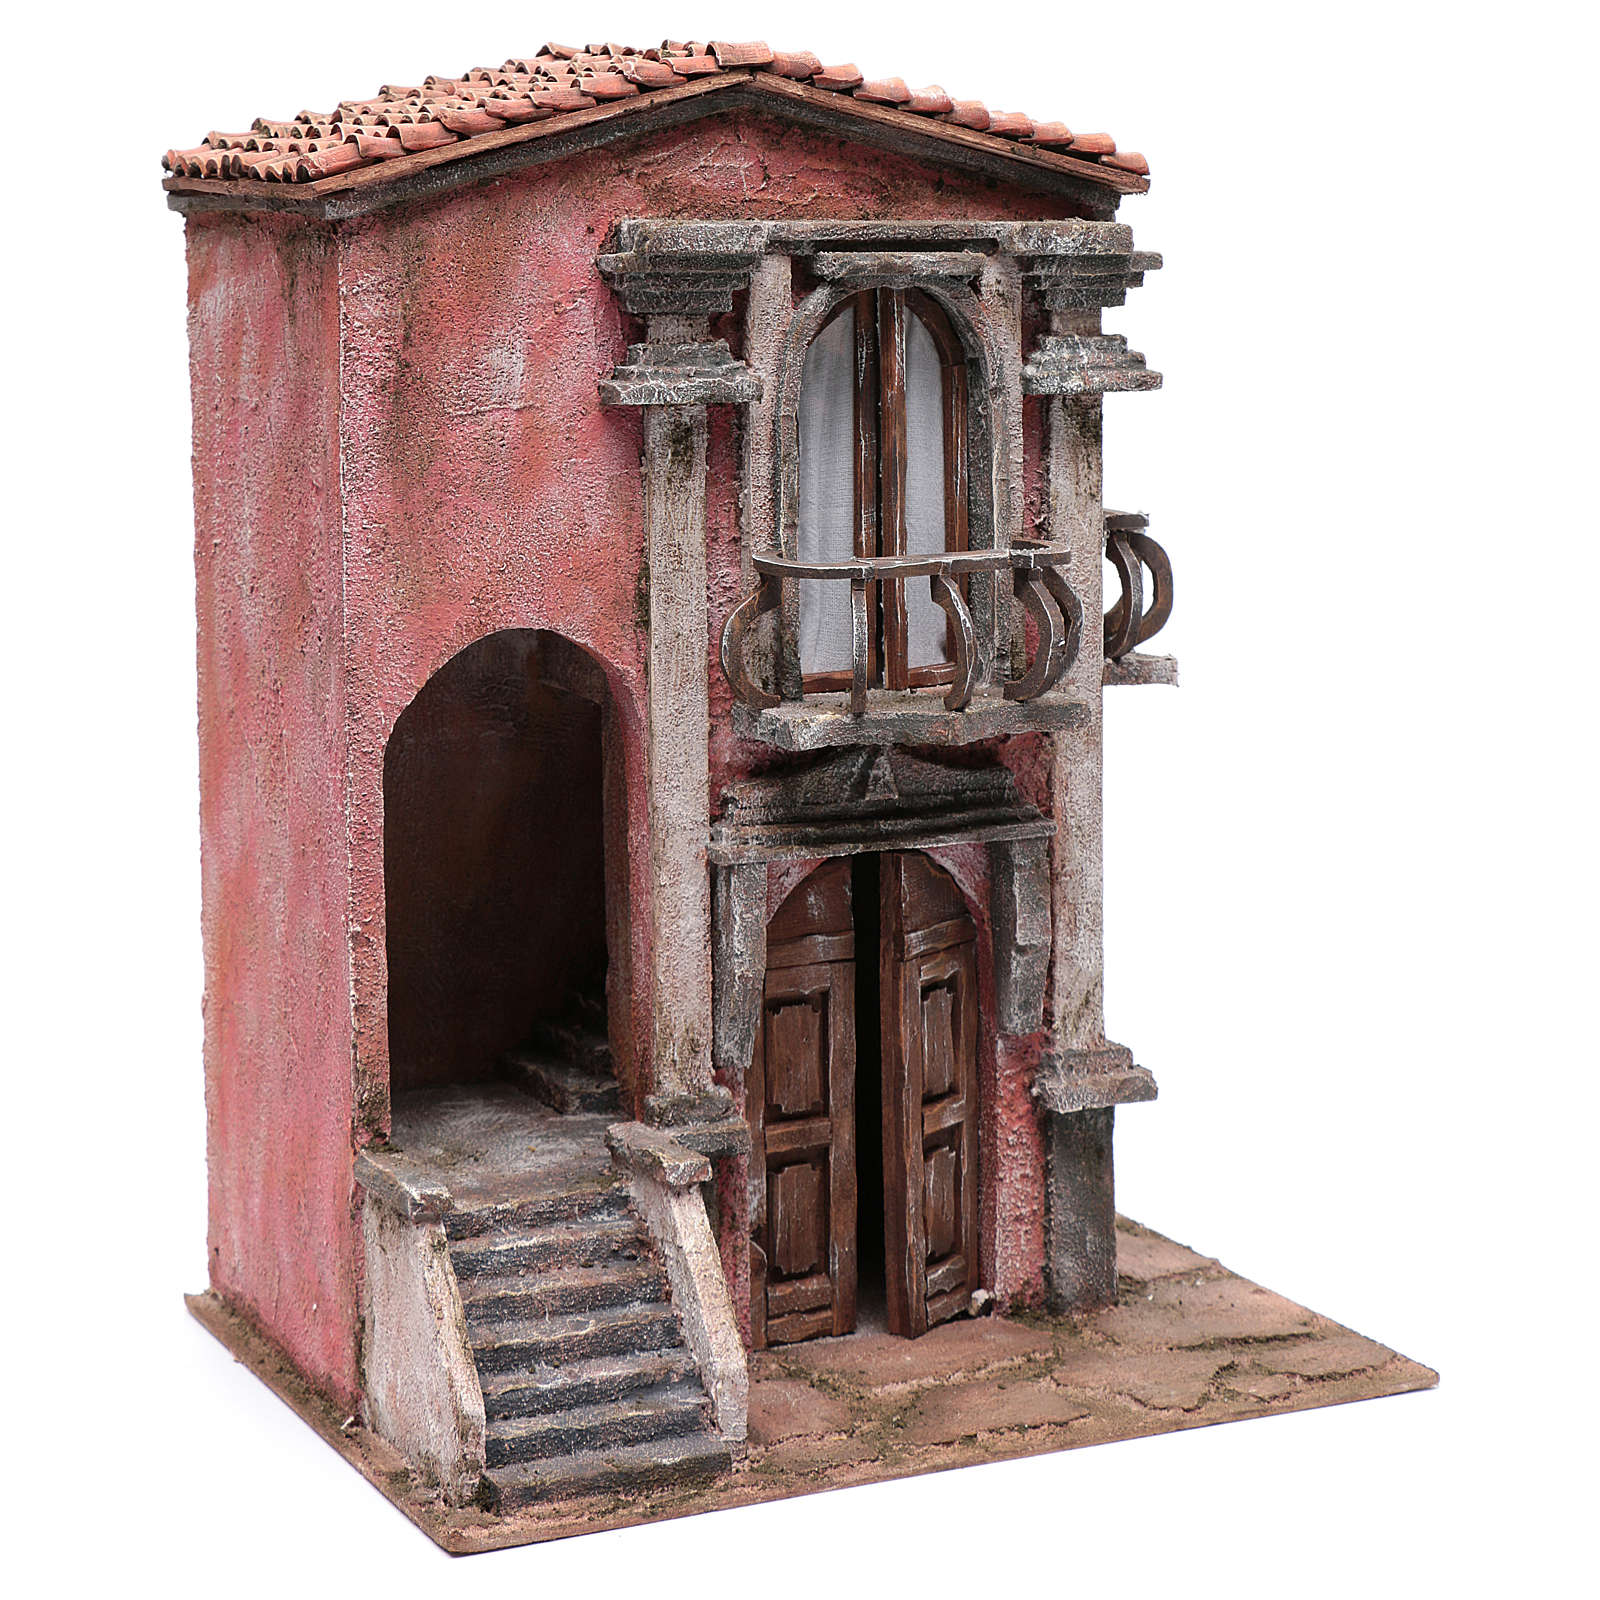 Nativity scene house with staircase and balcony 45x35x25 cm 4